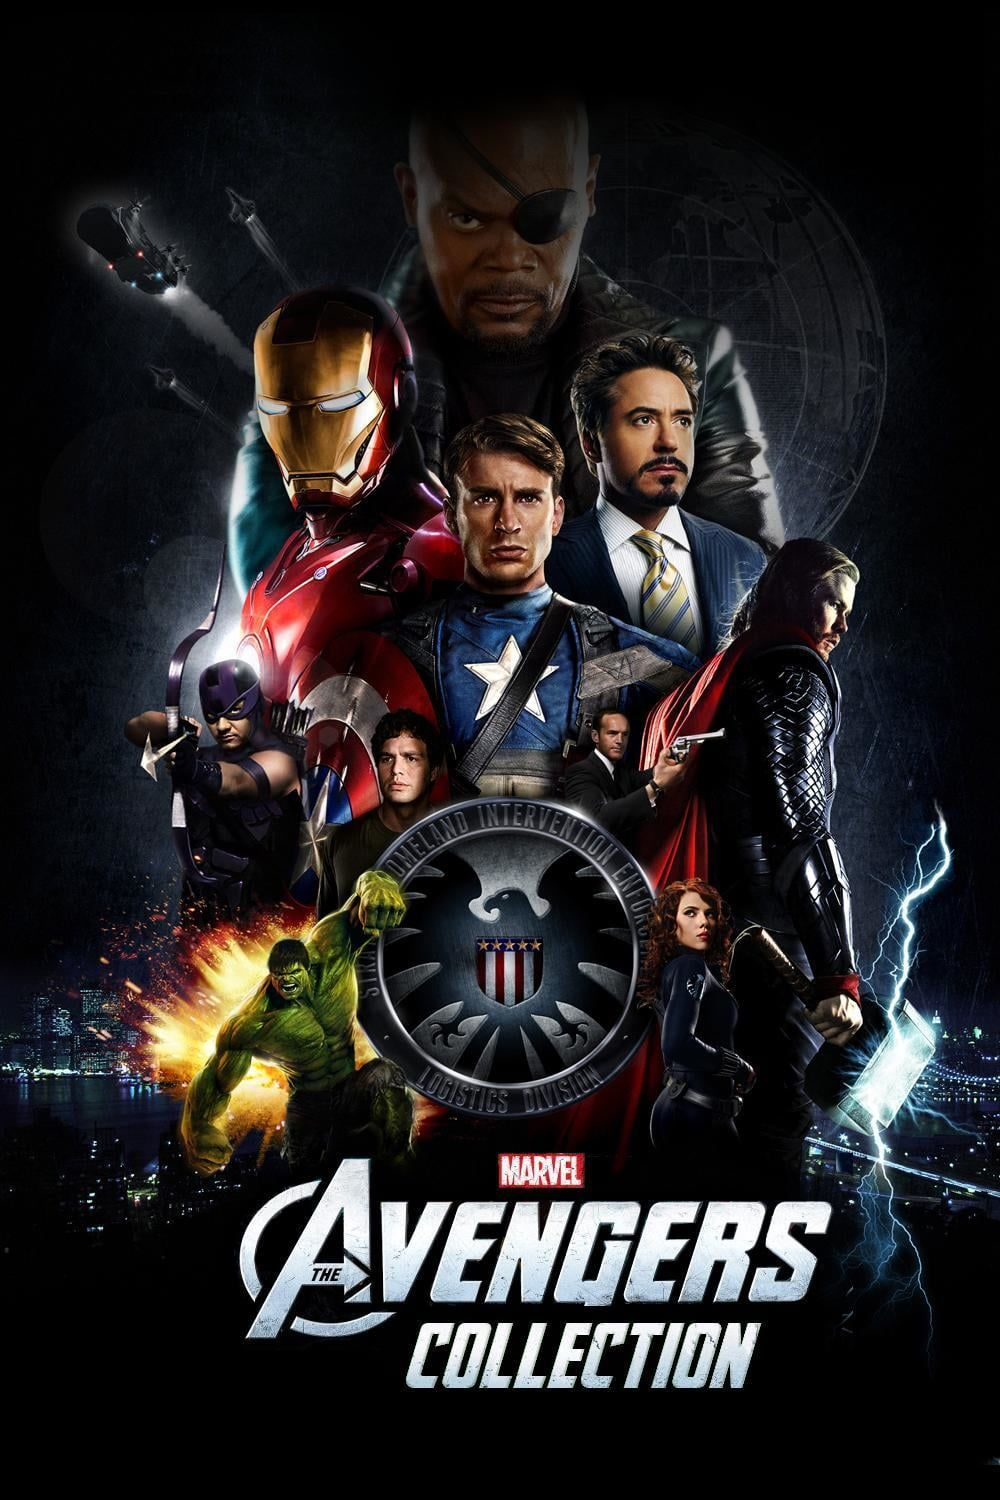 untitled avengers movie poster - #poster, #bestposter, #fullhd